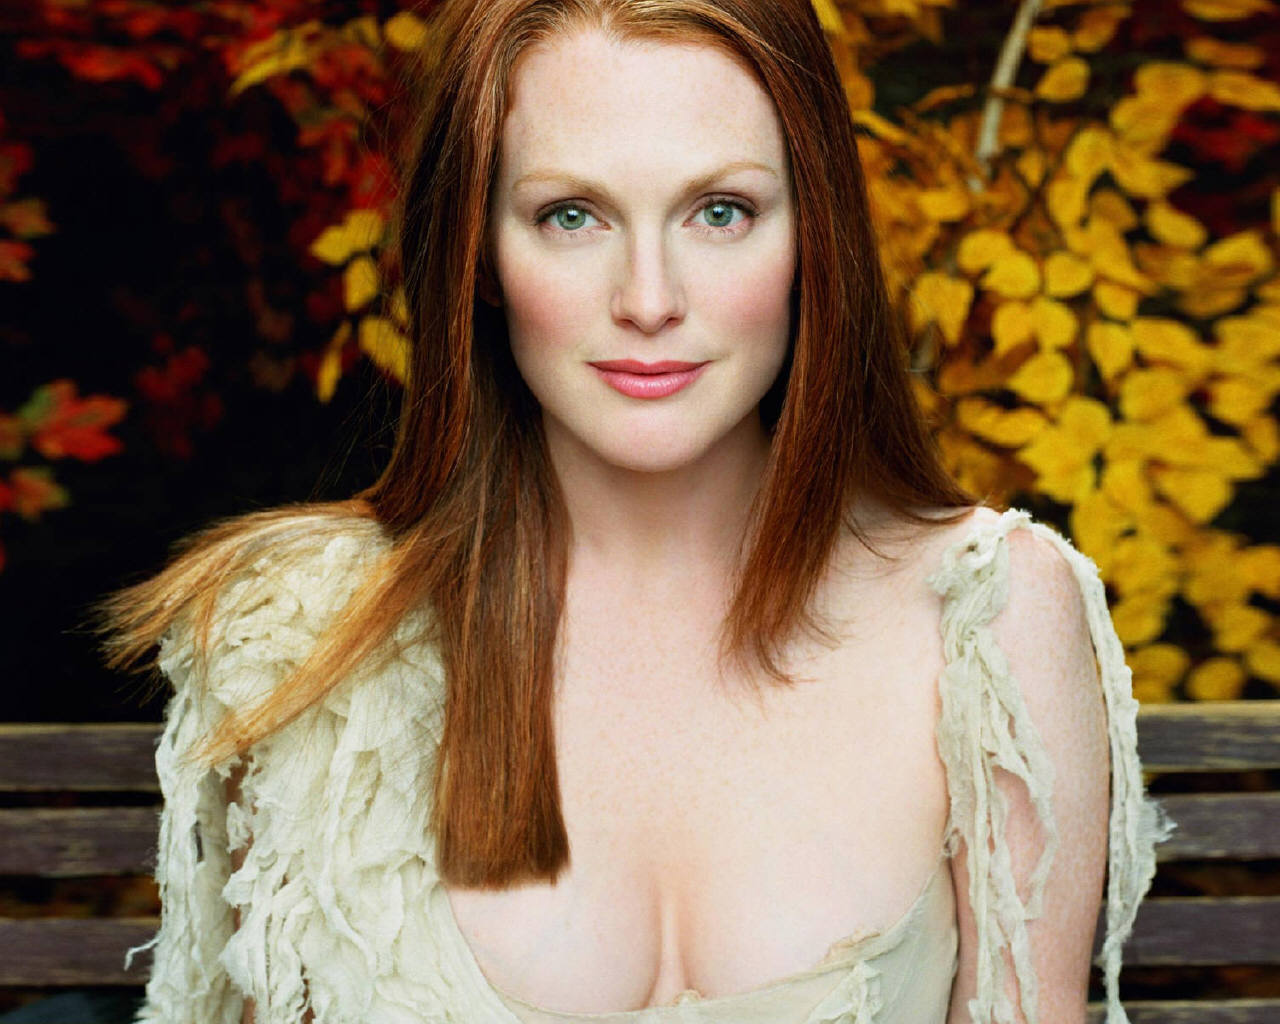 Julianne Moore - Julianne Moore Wallpaper (253328) - Fanpop